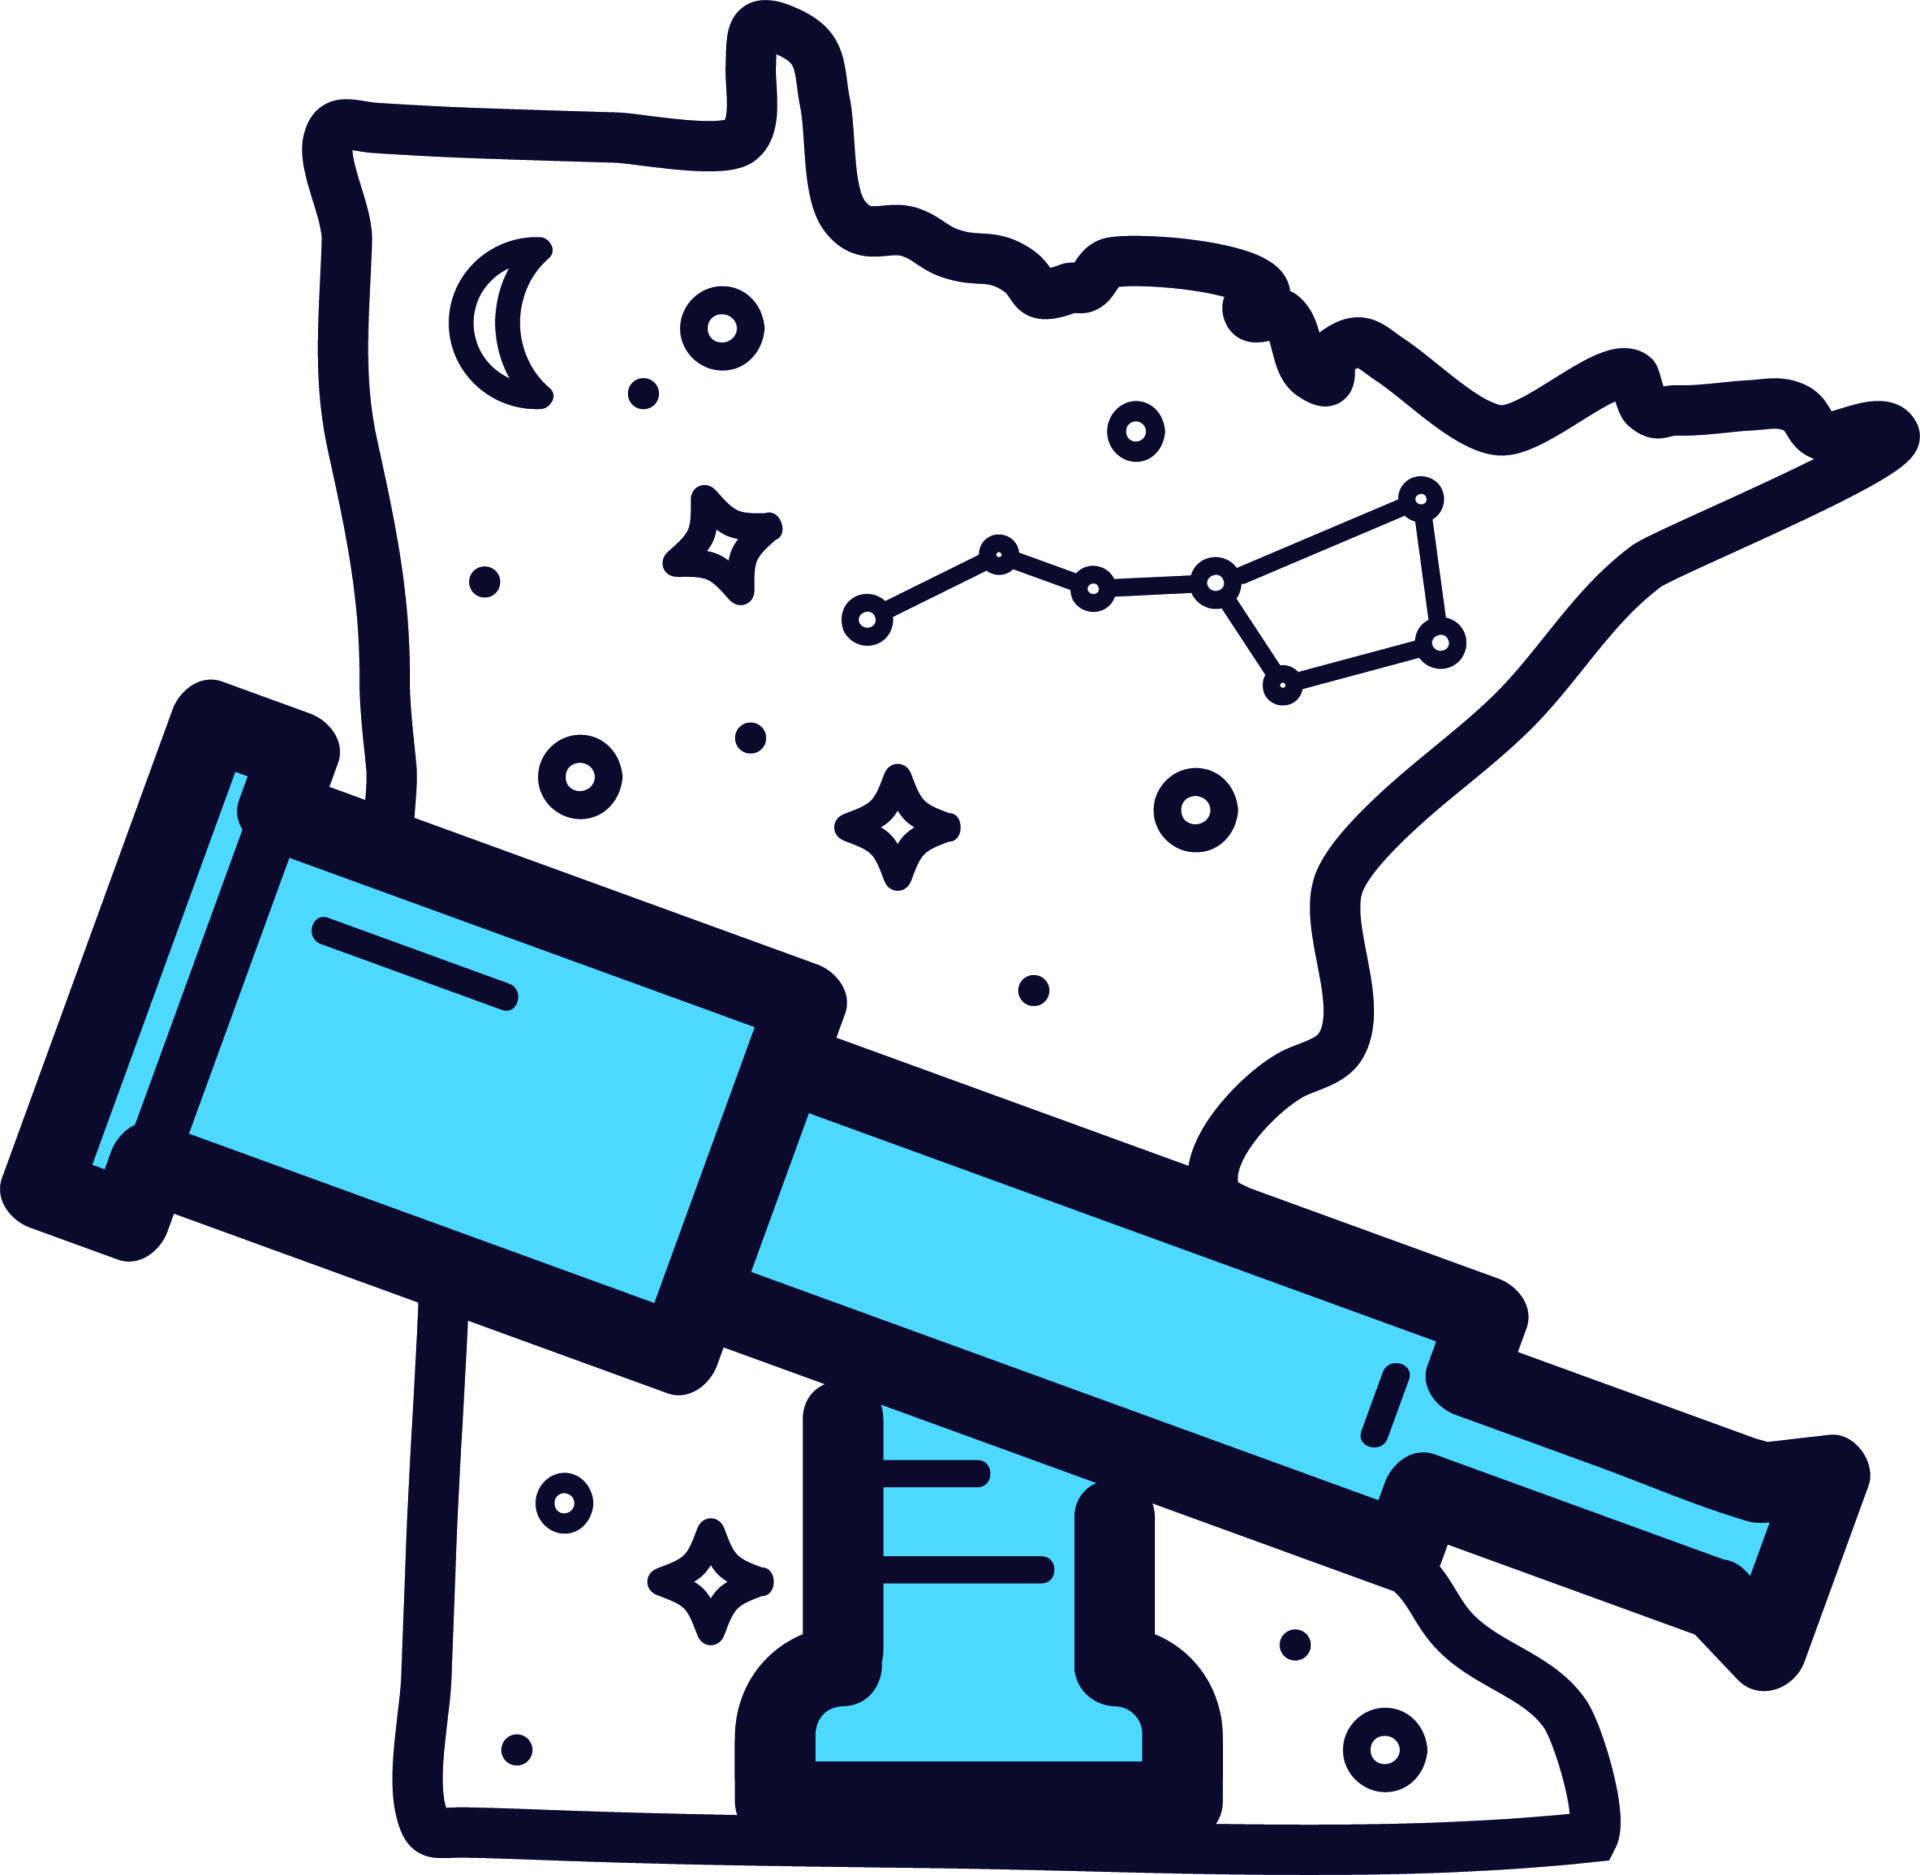 Outline of Minnesota with stars, moons, and telescope icons